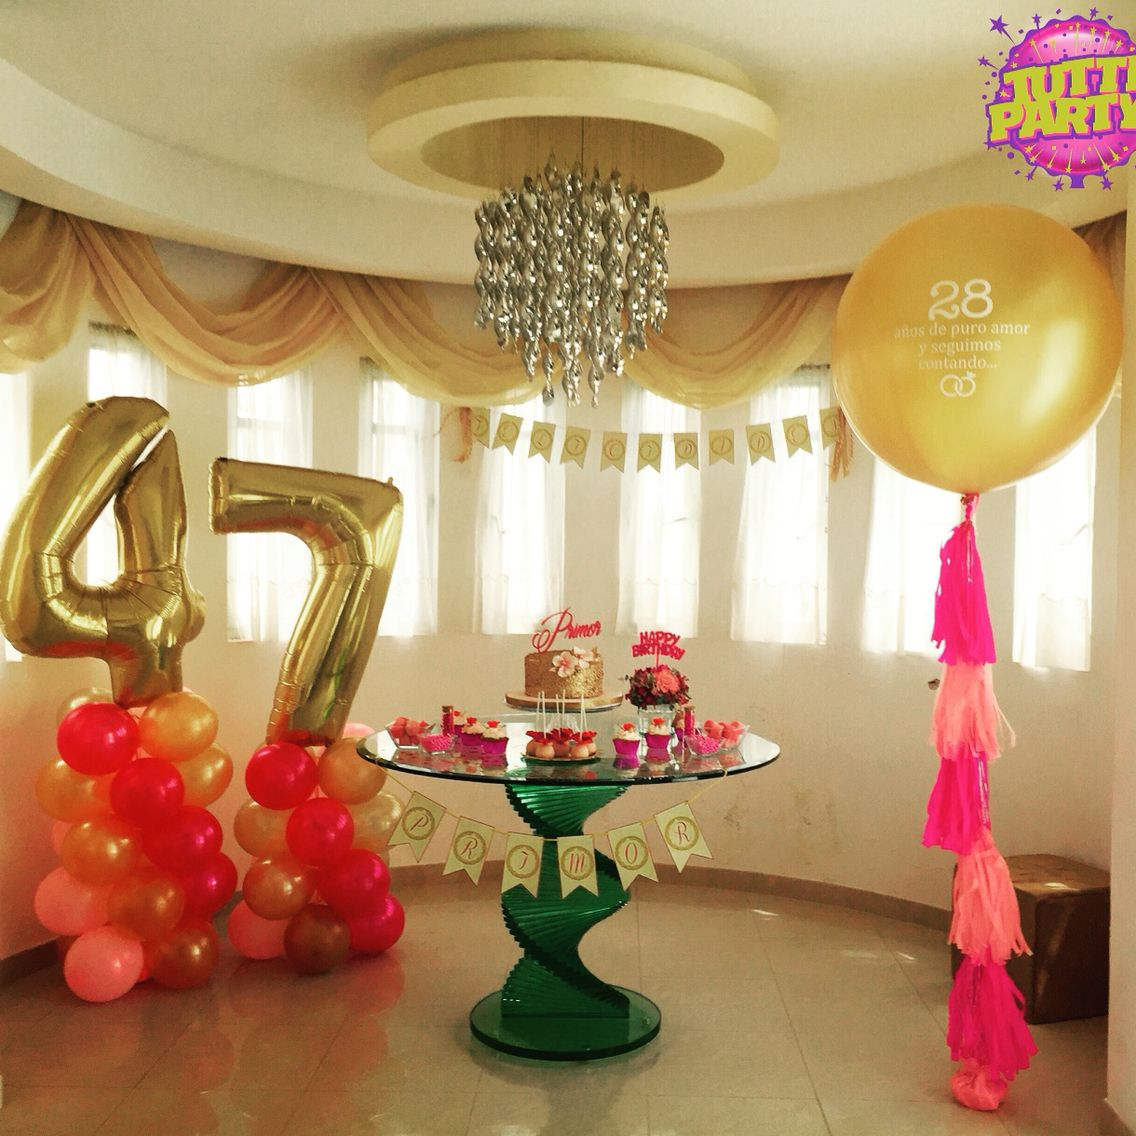 Elegant Balloons decorations golden balloons Elegant birthday